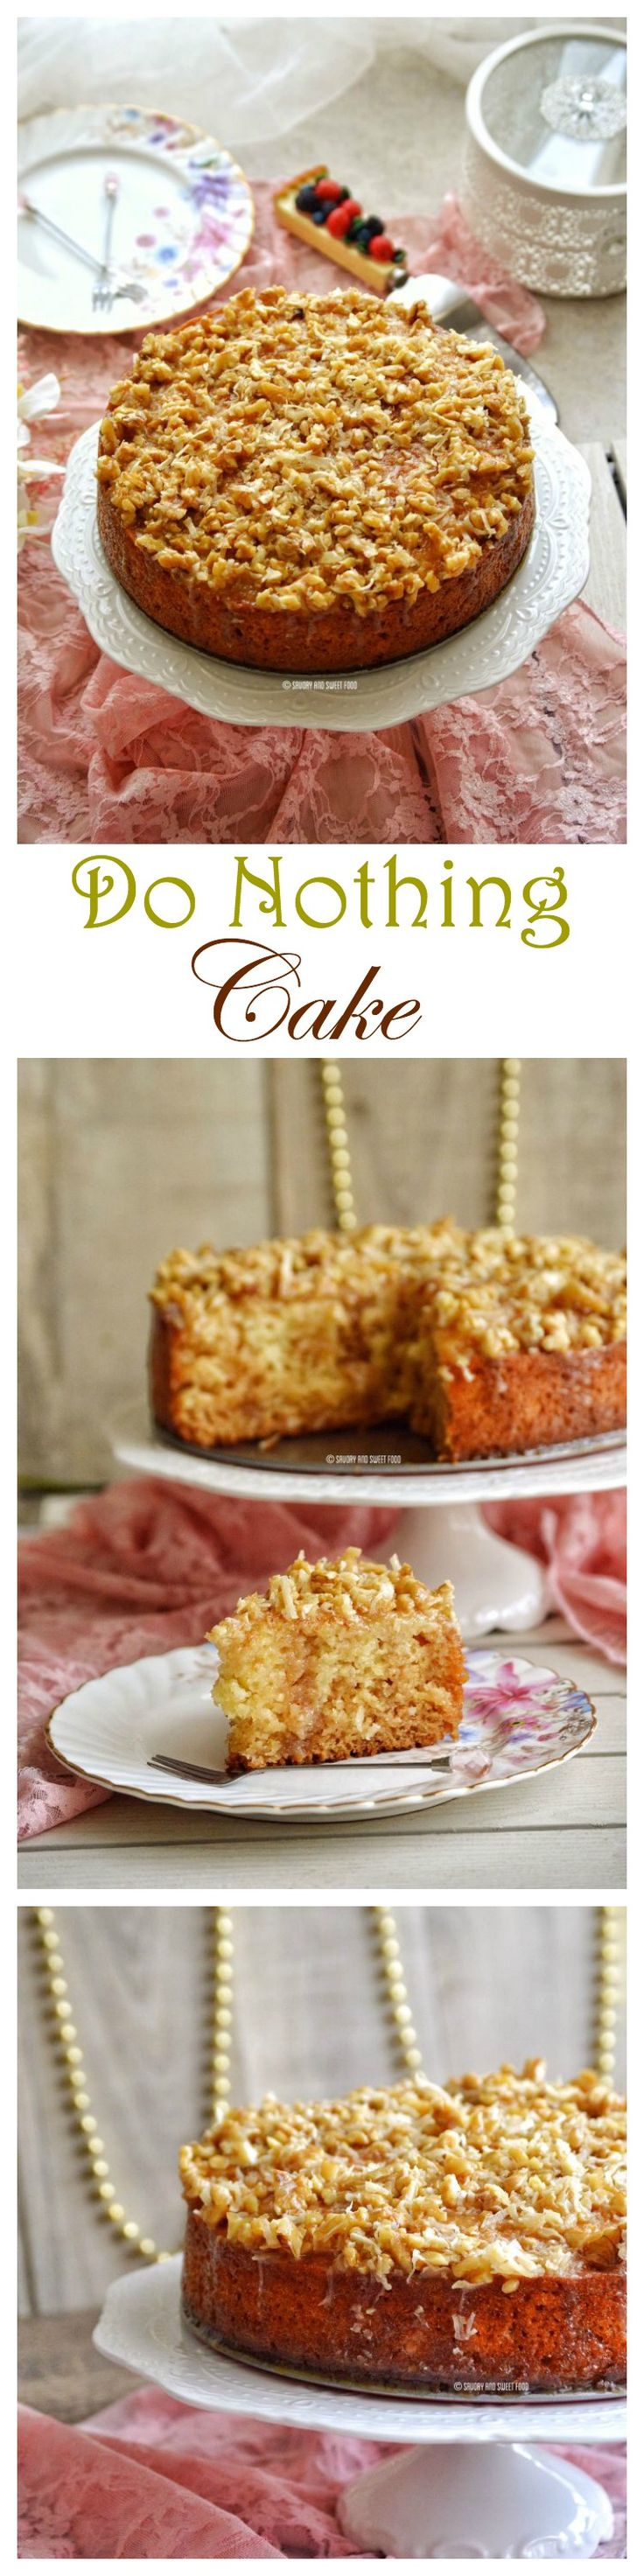 This really is a do nothing cake because this is too easy. All you have to do is mix up all the ingredients with a spoon and bake. Then pour a rich buttery sauce over the hot cake. No beating, or sifting needed and it tastes and looks so good as if you have spent hours making this cake.